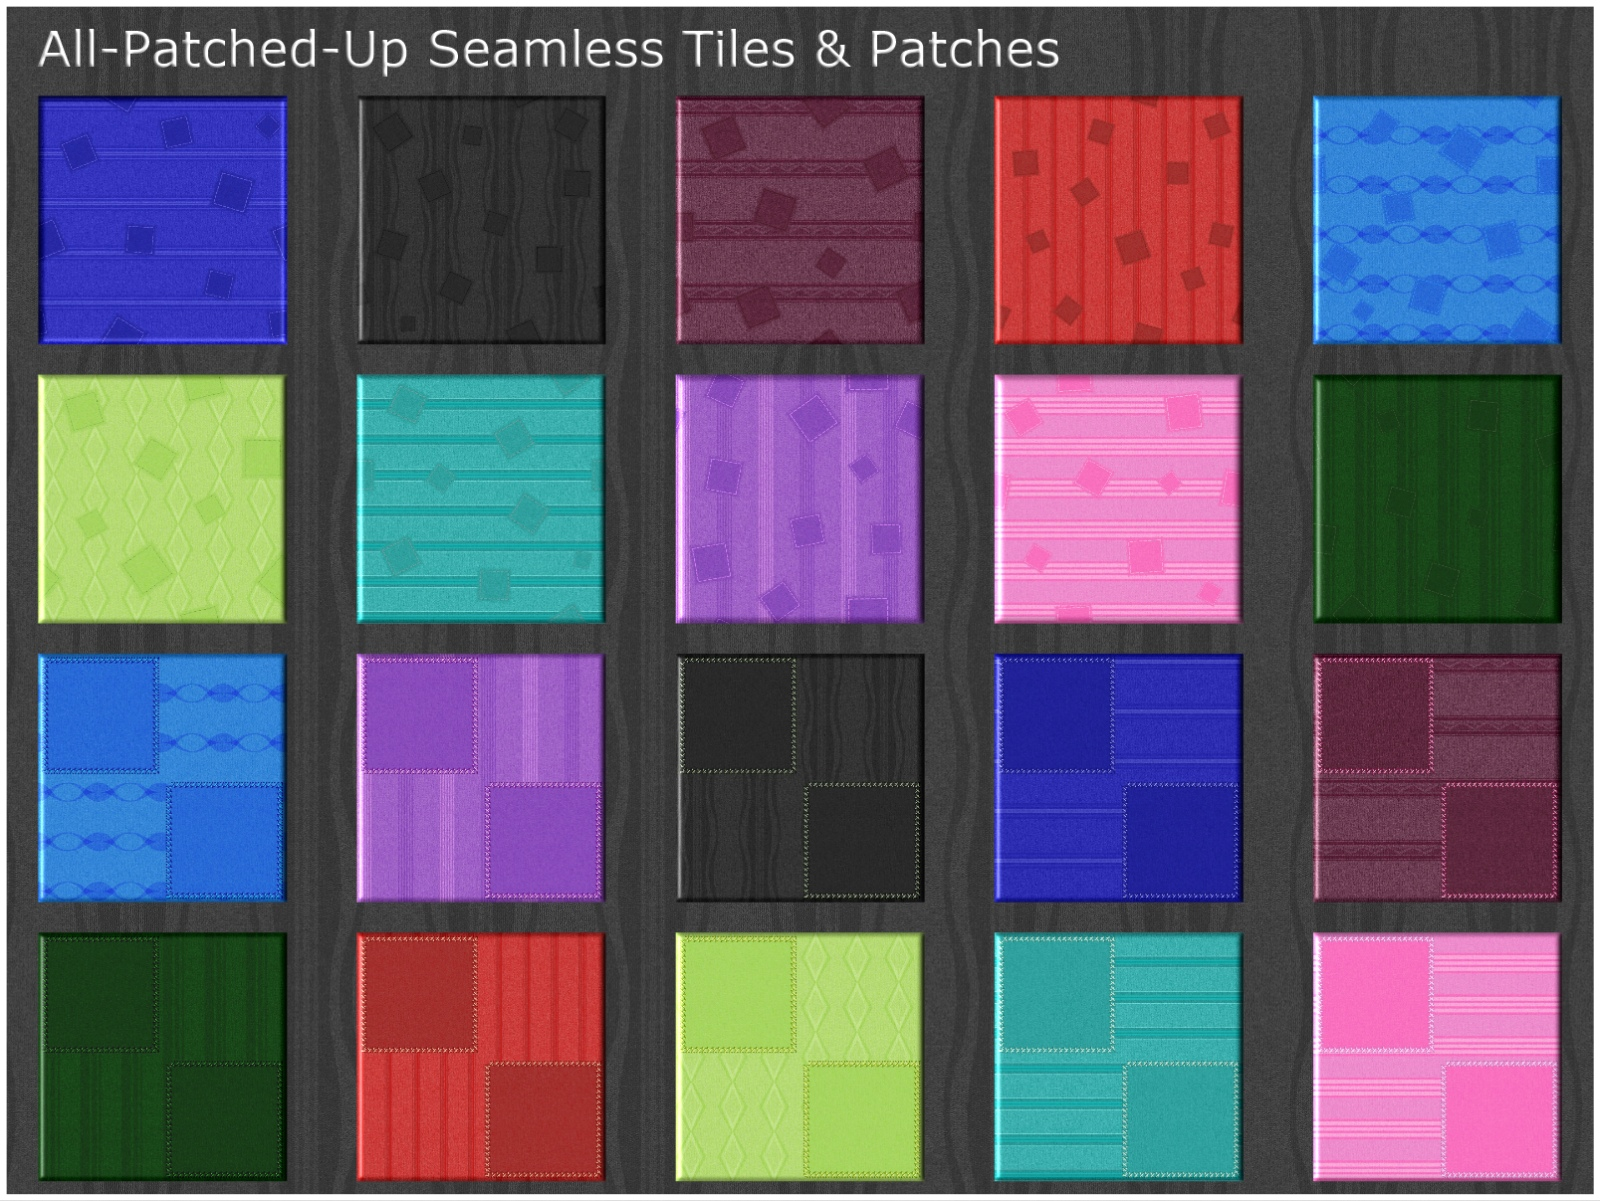 All-Patched-Up Seamless Tiles